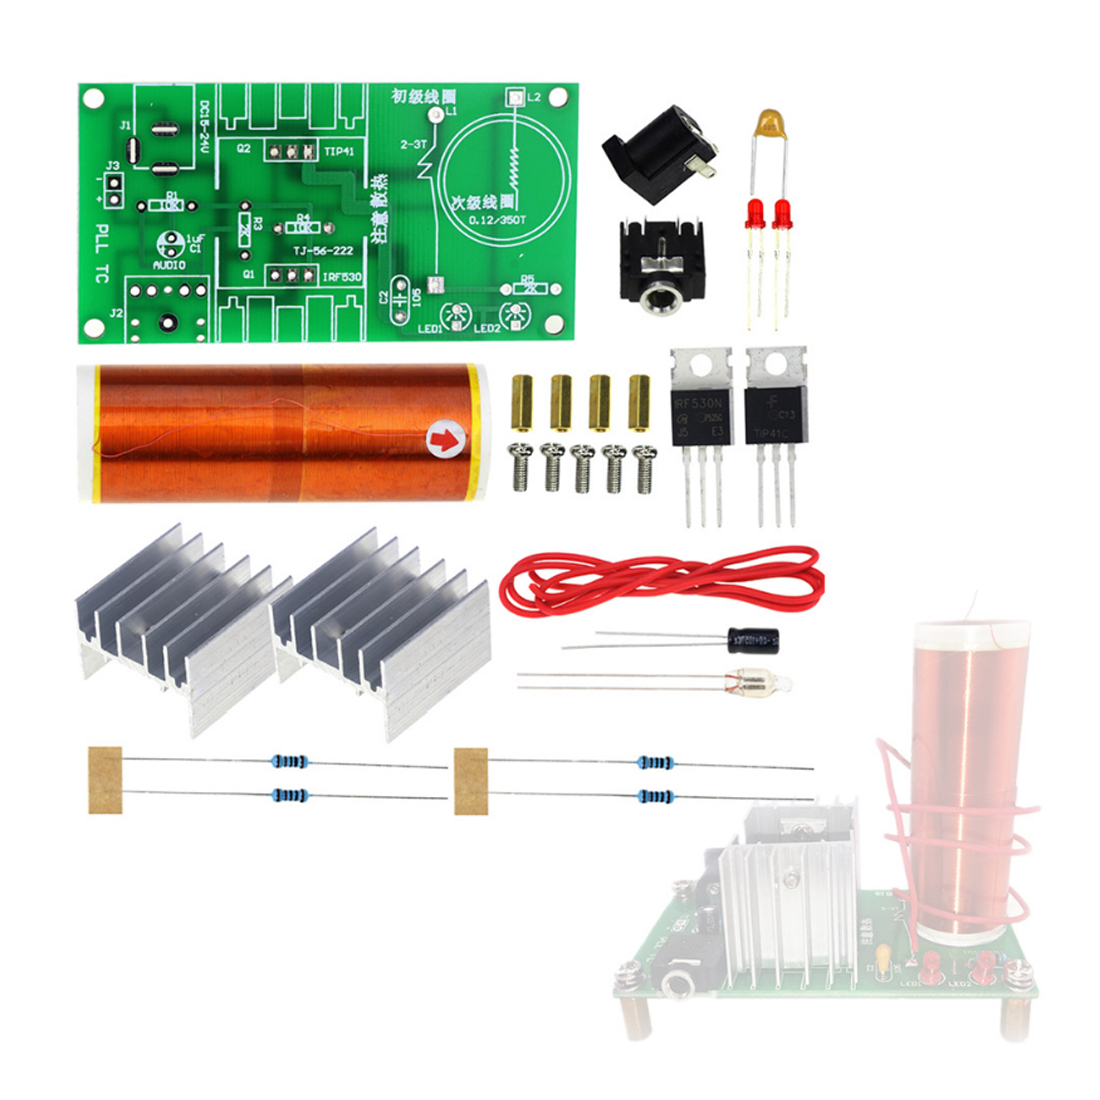 Mini Music Plasma Horn Speaker DIY Electronic Component Parts Wireless Transmission DIY Coil Kit